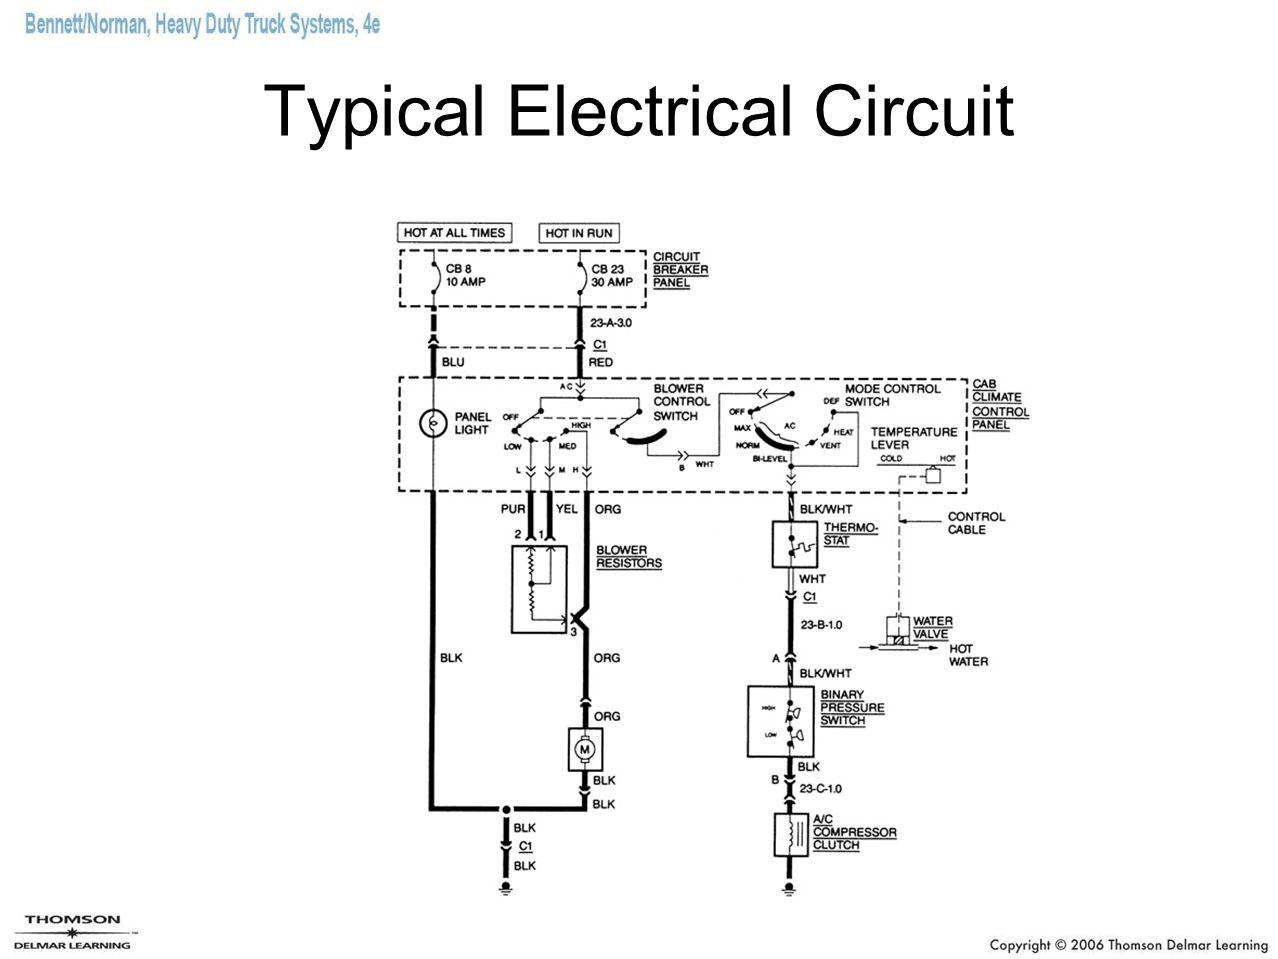 Typical Electrical Circuit